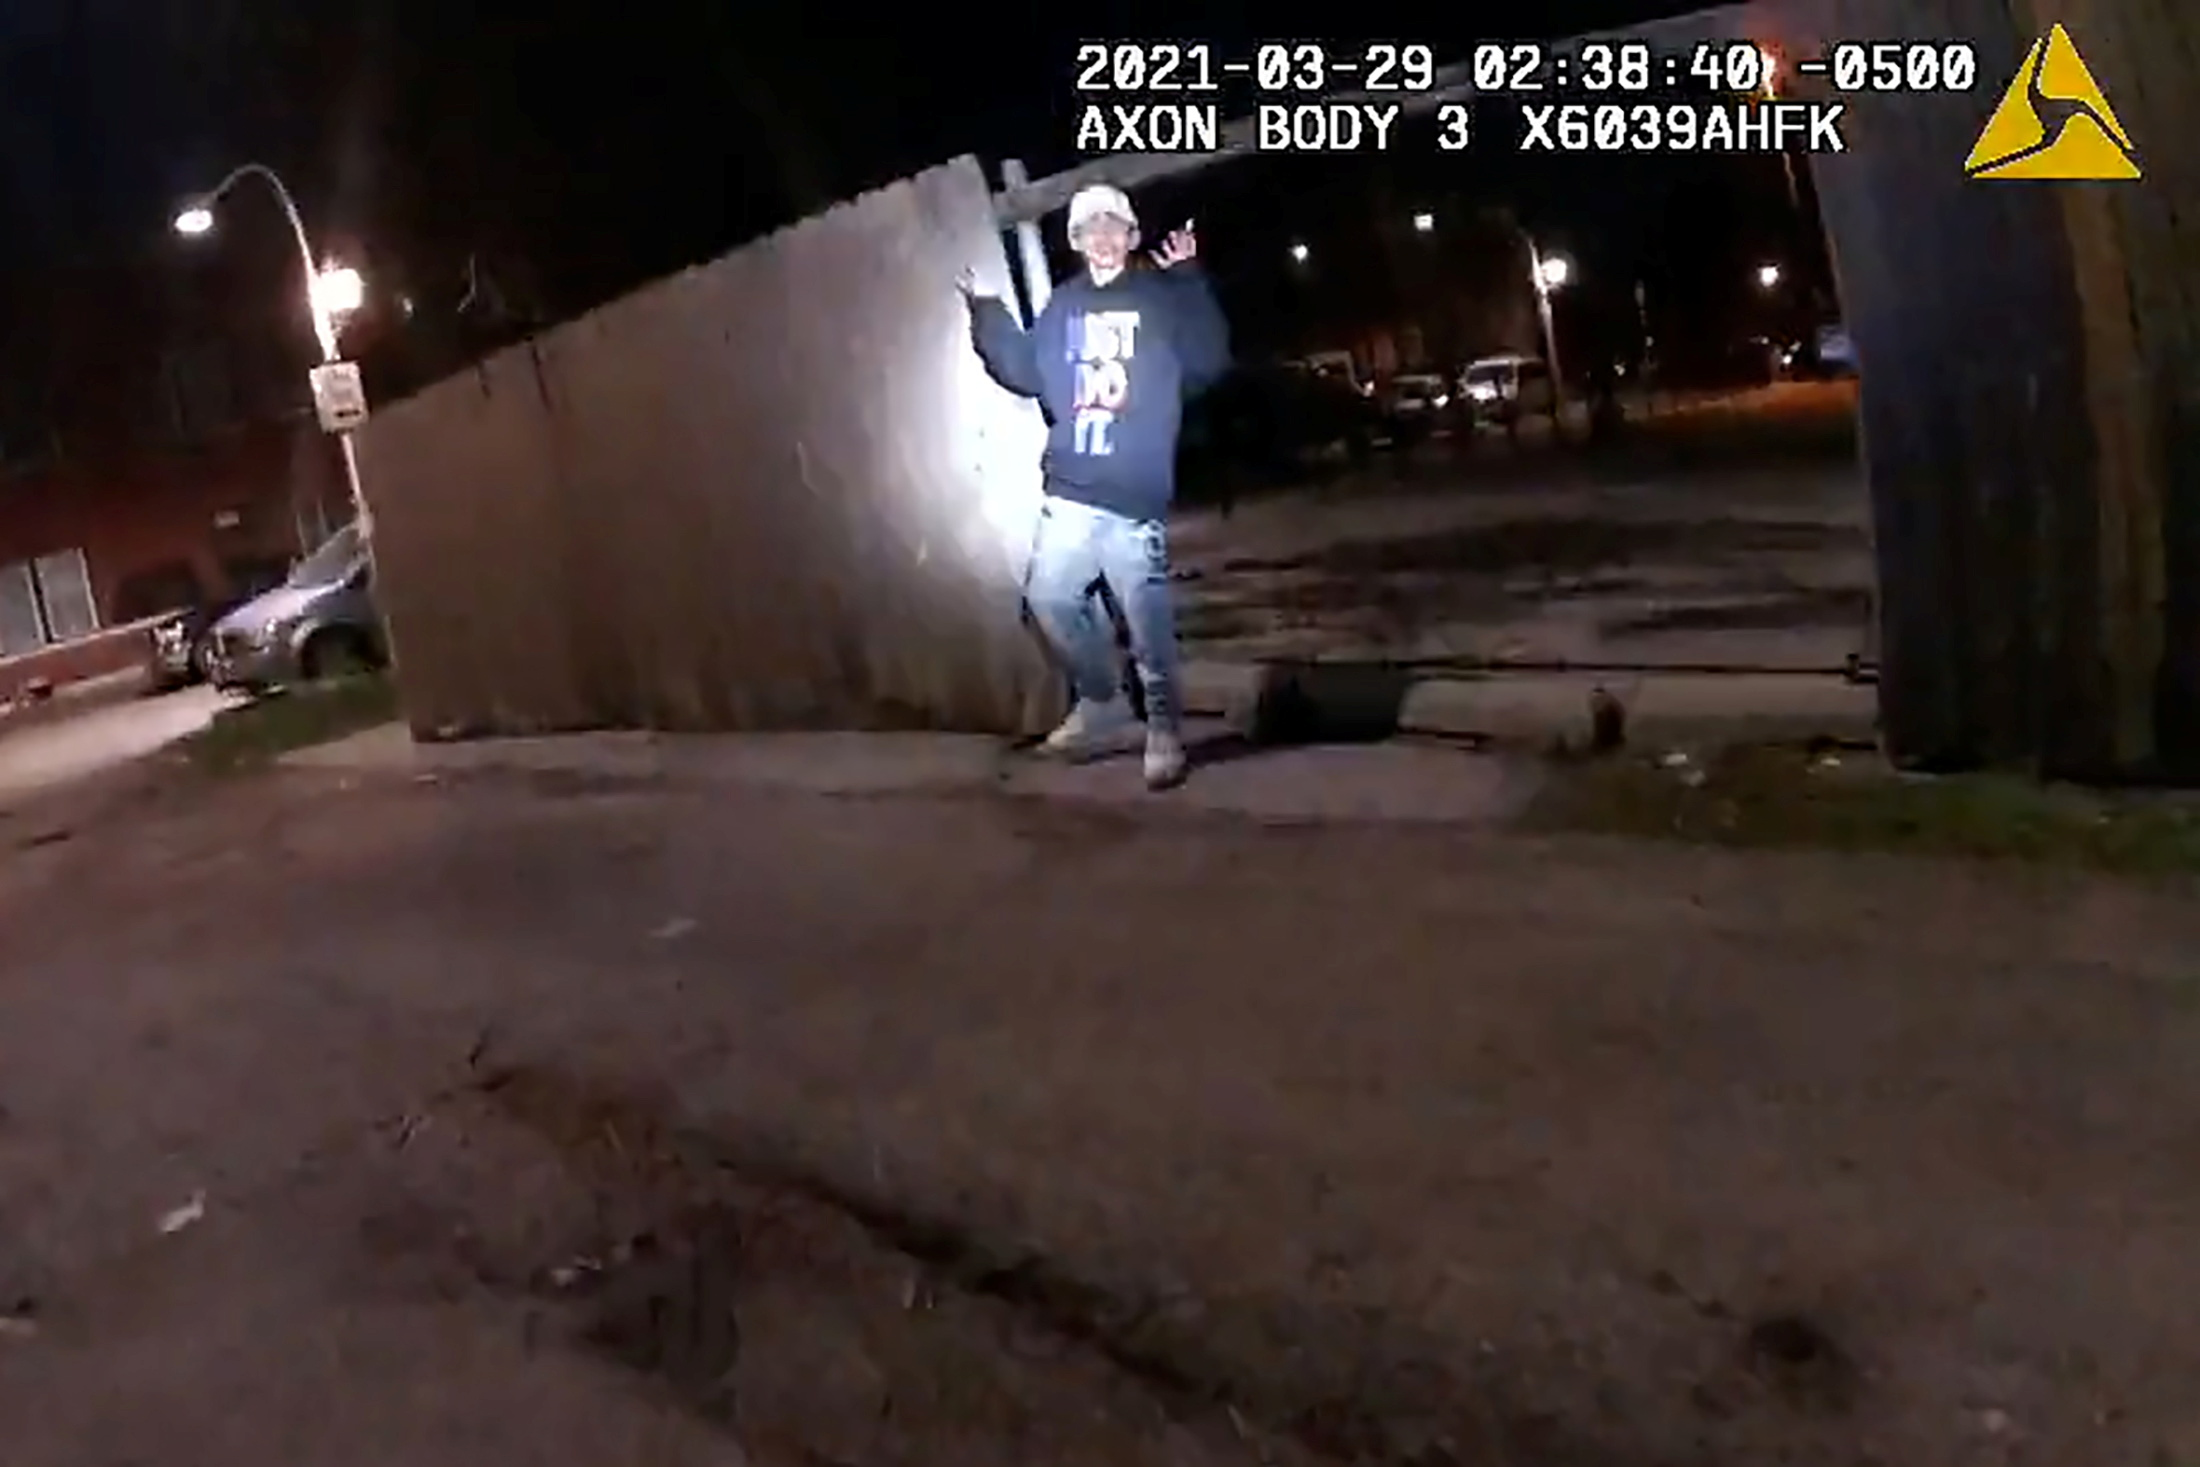 Adam Toledo, 13, holds up his hands a split second before he was shot by police in Little Village, a neighborhood on the West Side of Chicago, Illinois, U.S. March 29, 2021 in a still image from police body camera video. Image taken March 29, 2021.    Civilian Office of Police Accountability/Handout via REUTERS